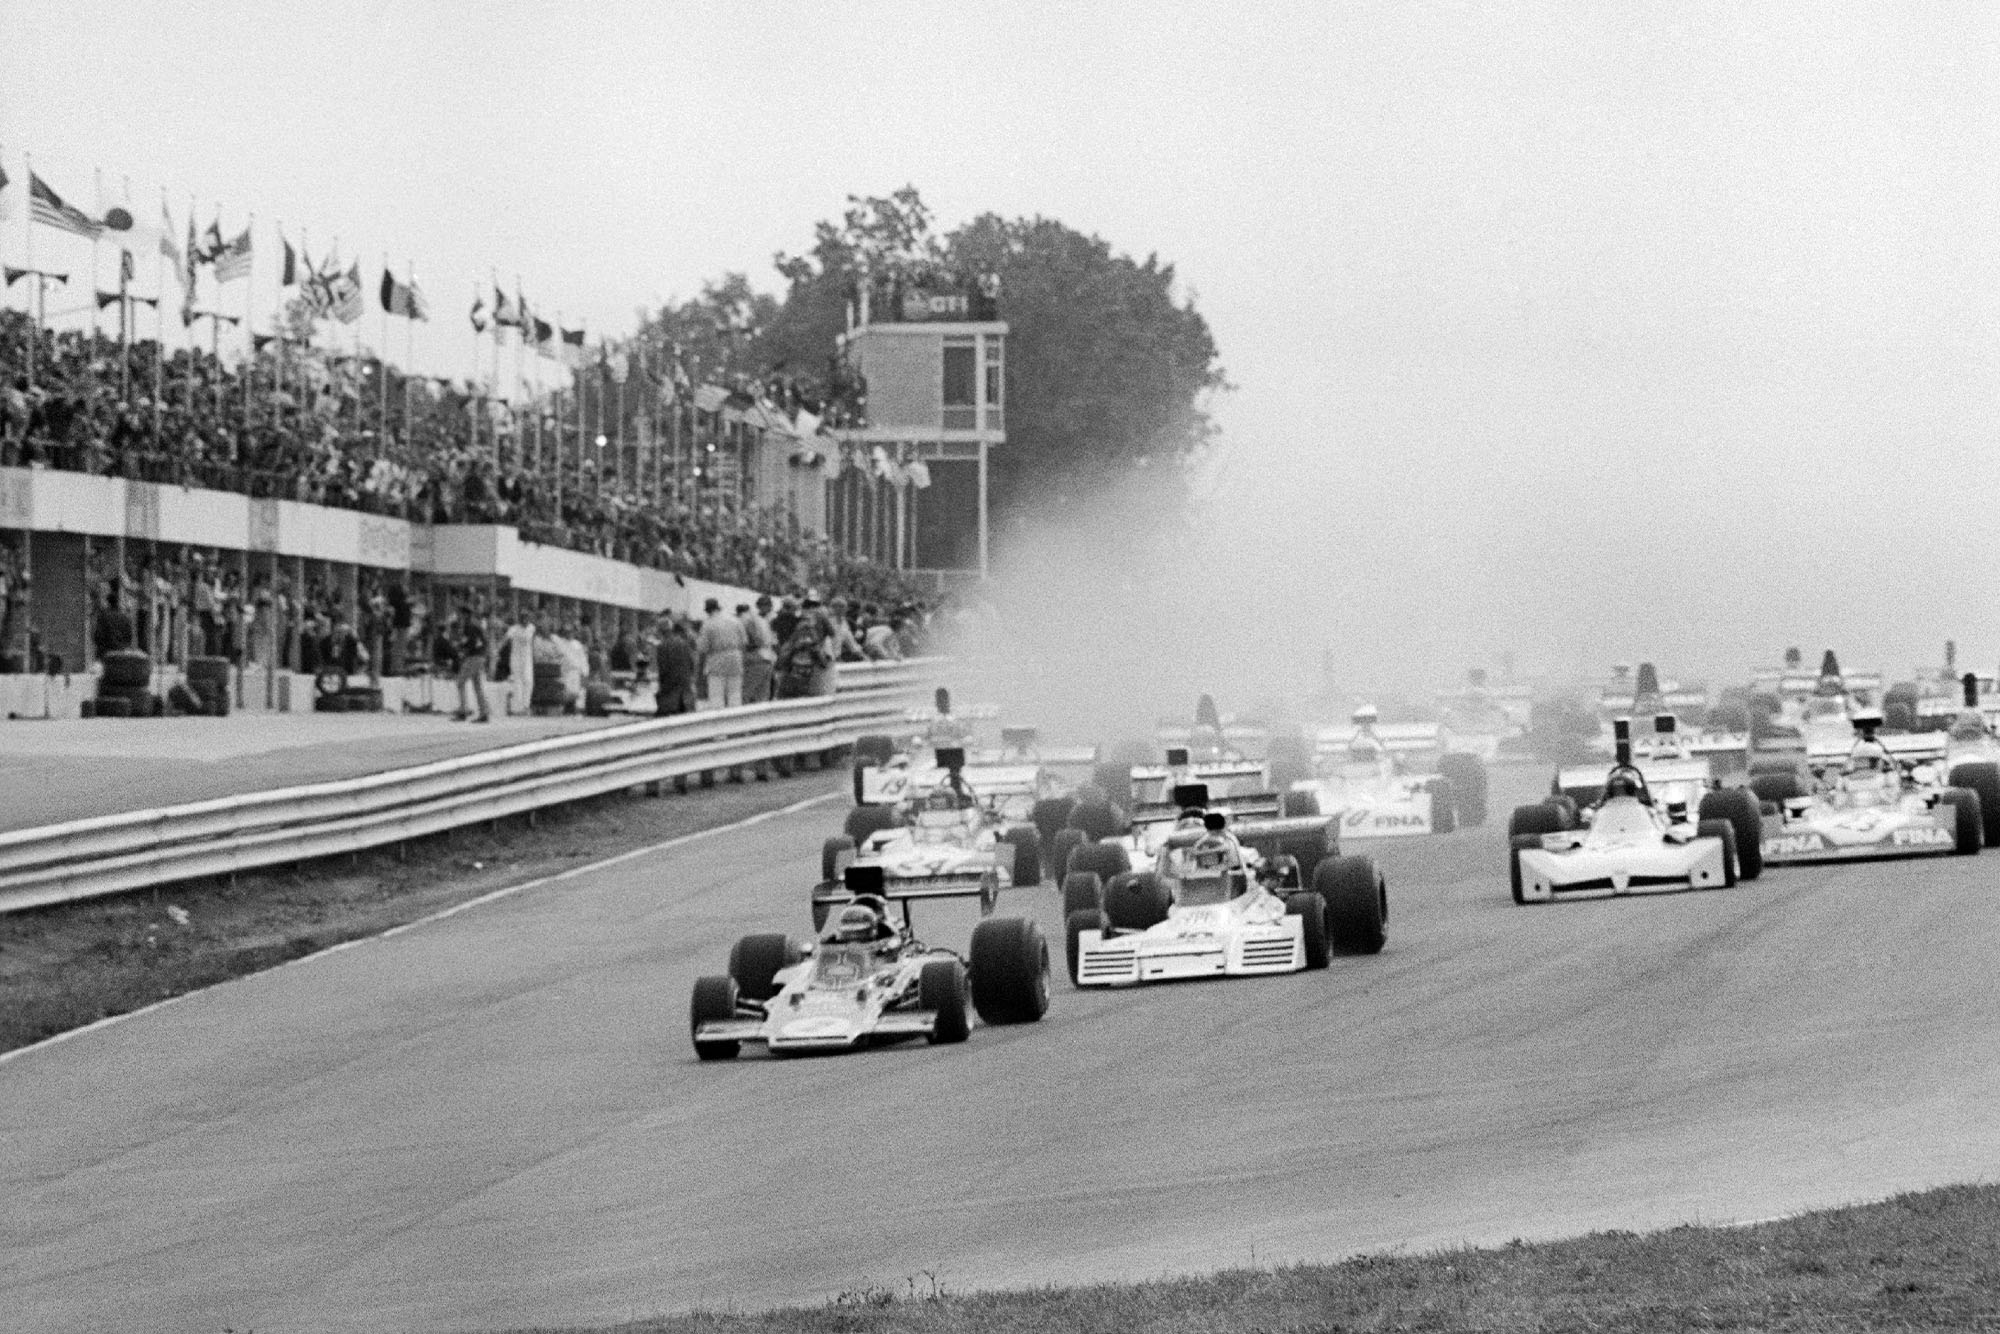 The cars pull away at the 1973 United States Grand Prix, Watkins Glen.